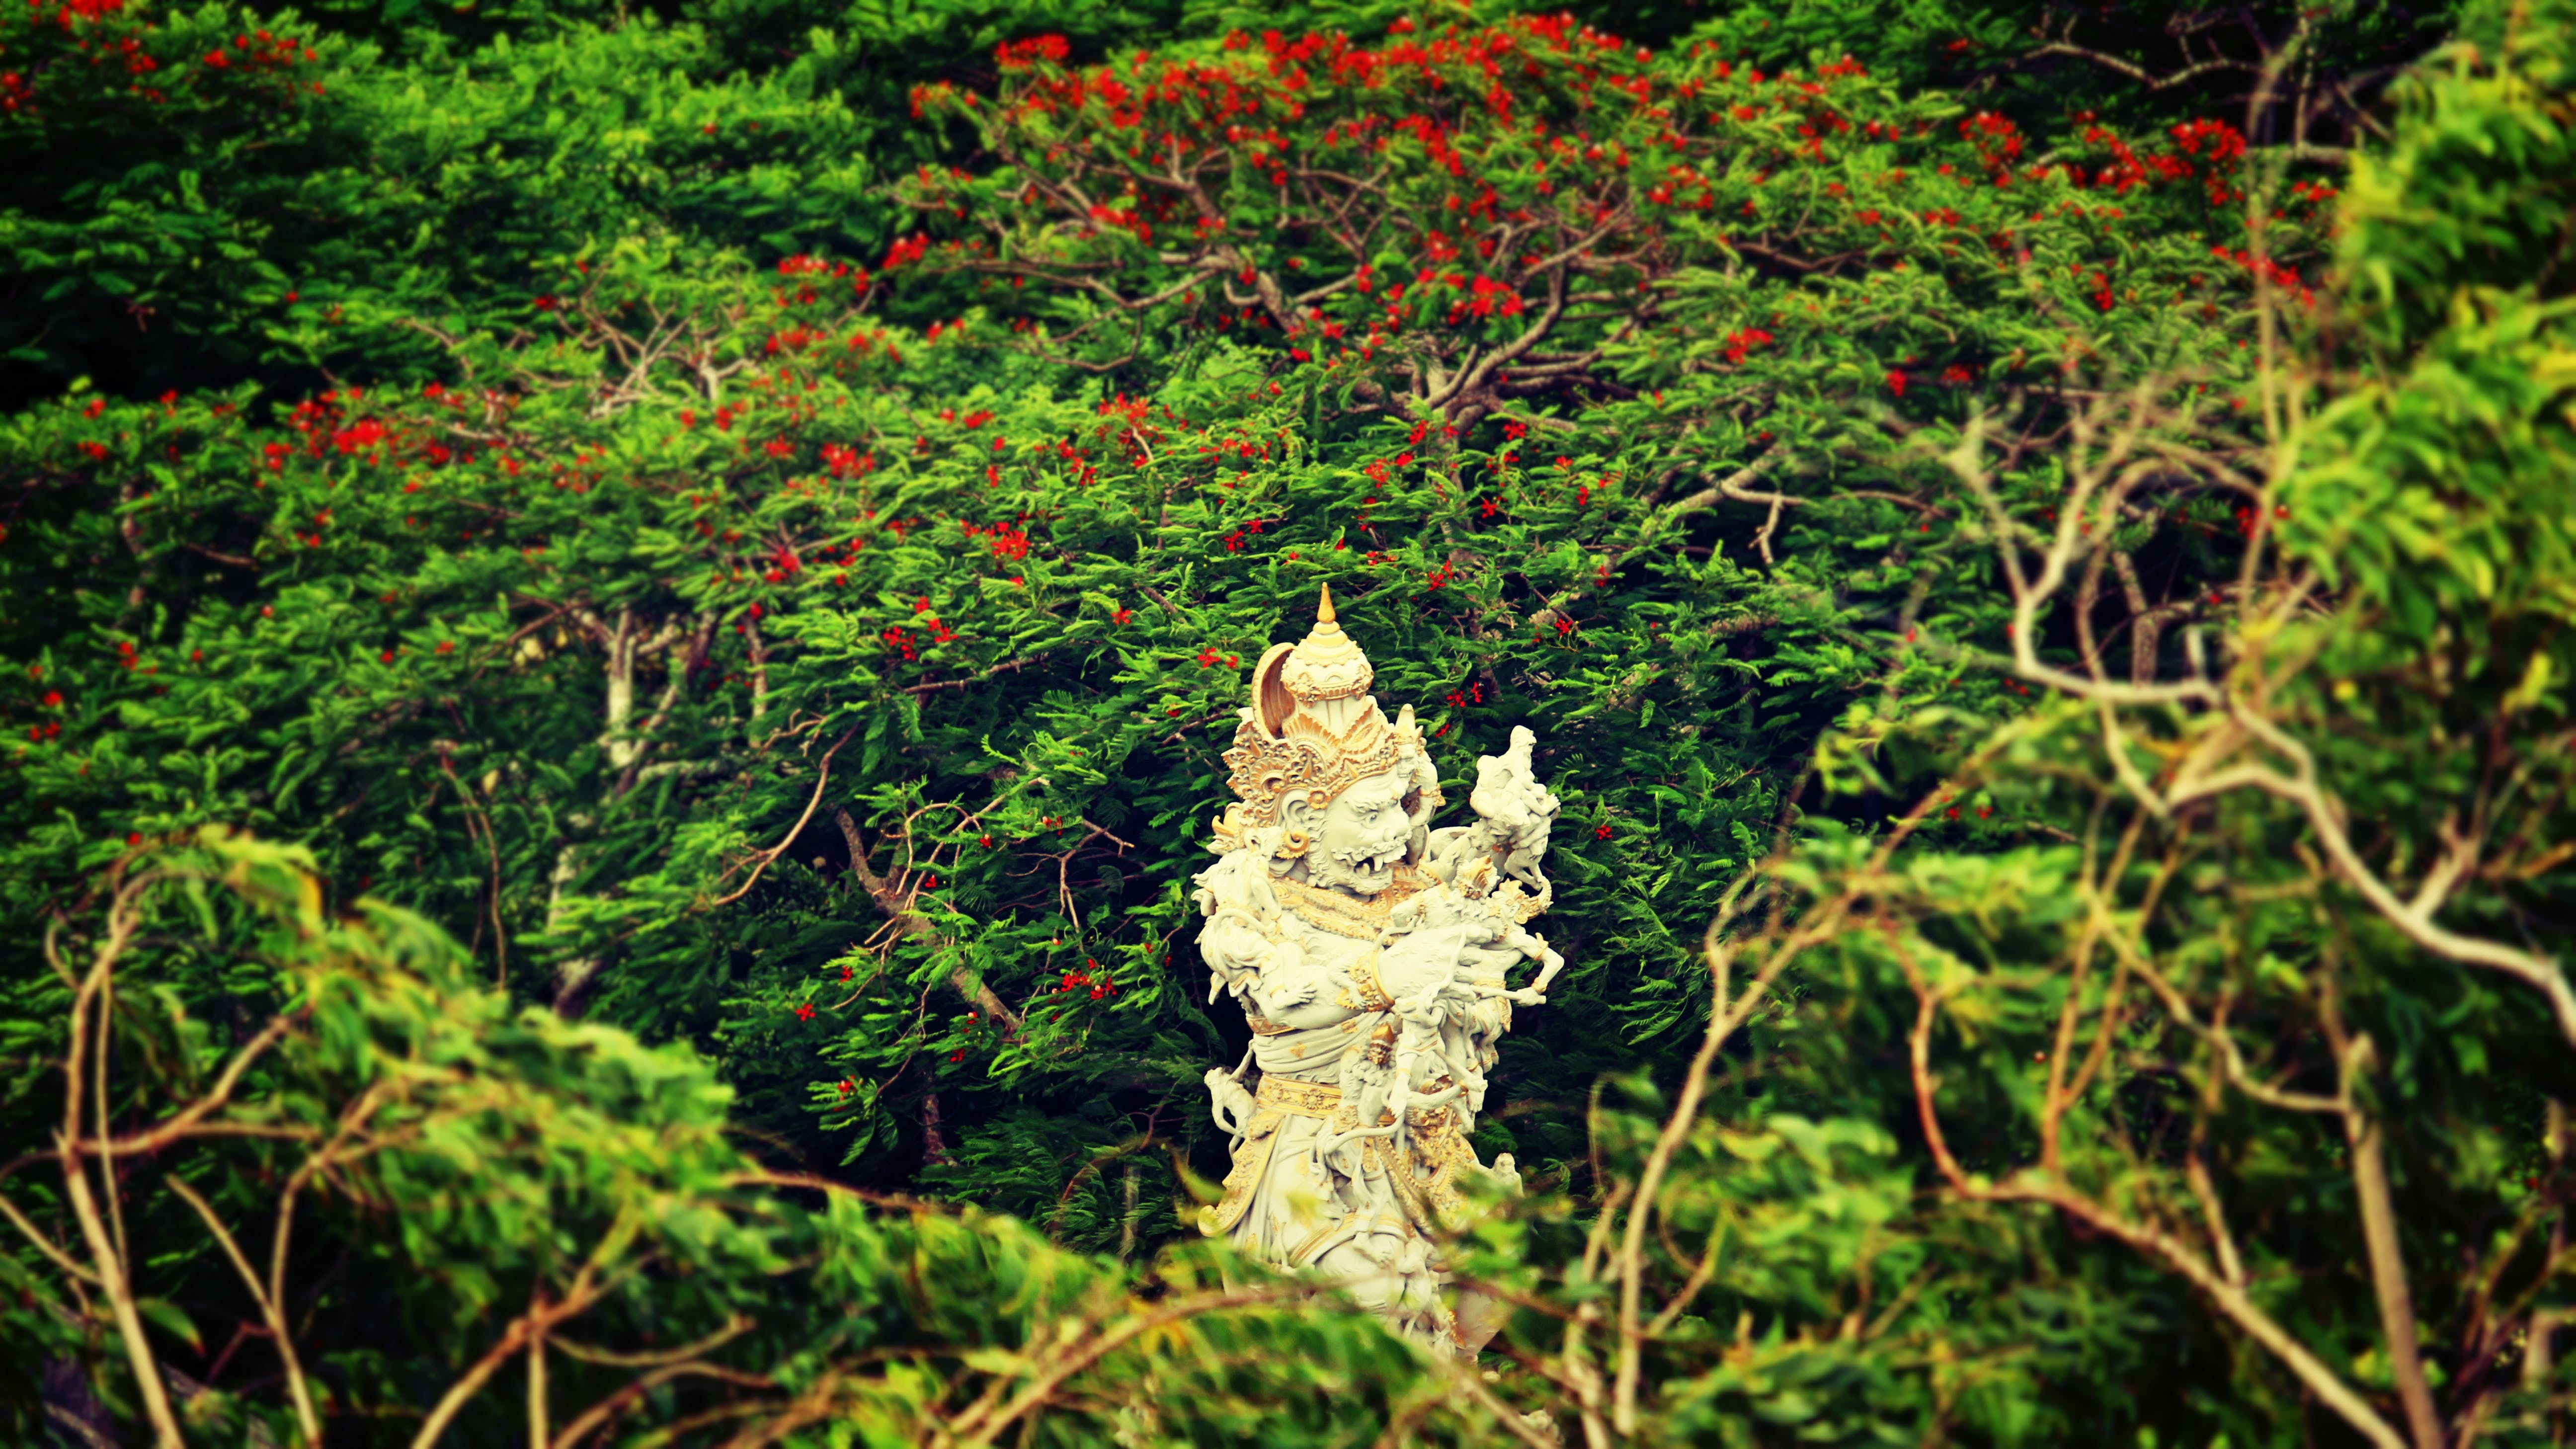 Beige Hindu Statue Surrounded by Trees at Daytime